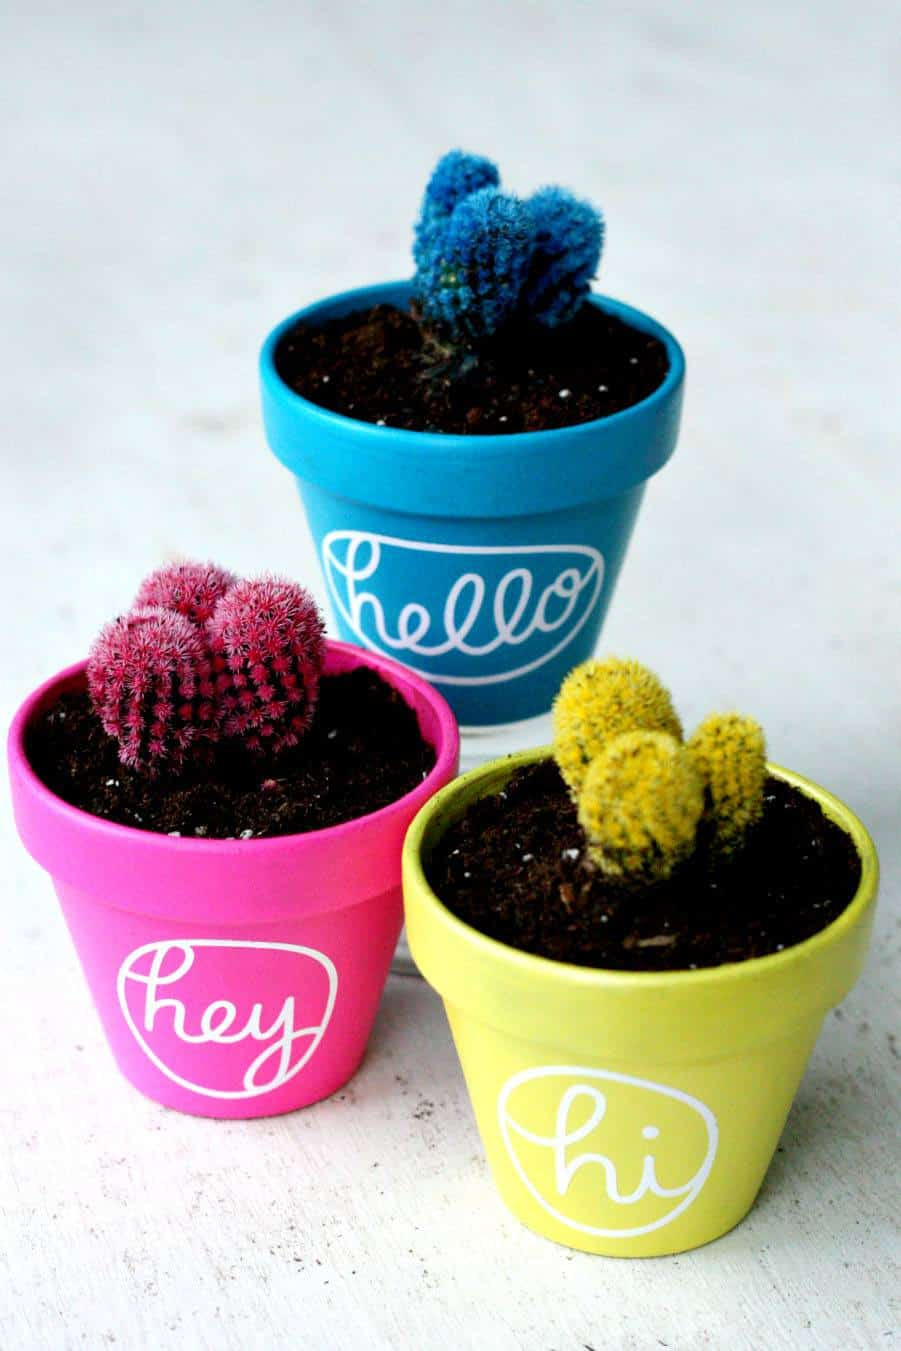 Colourful greeting pots